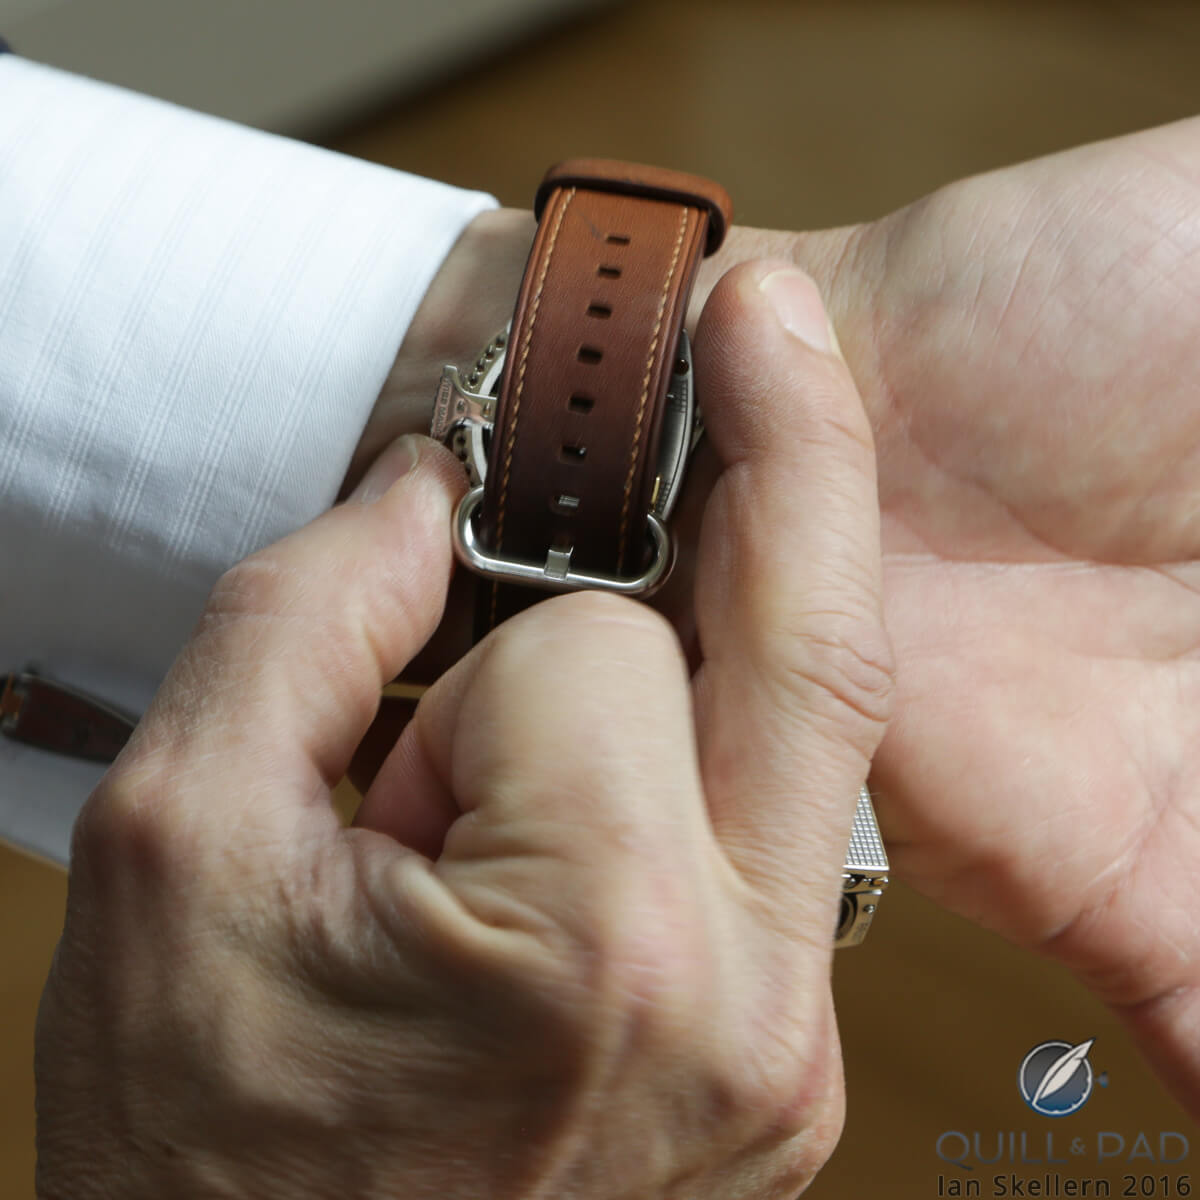 One-handed operation of the Roland Iten RWC11 symmetrically adjustable watch clasp